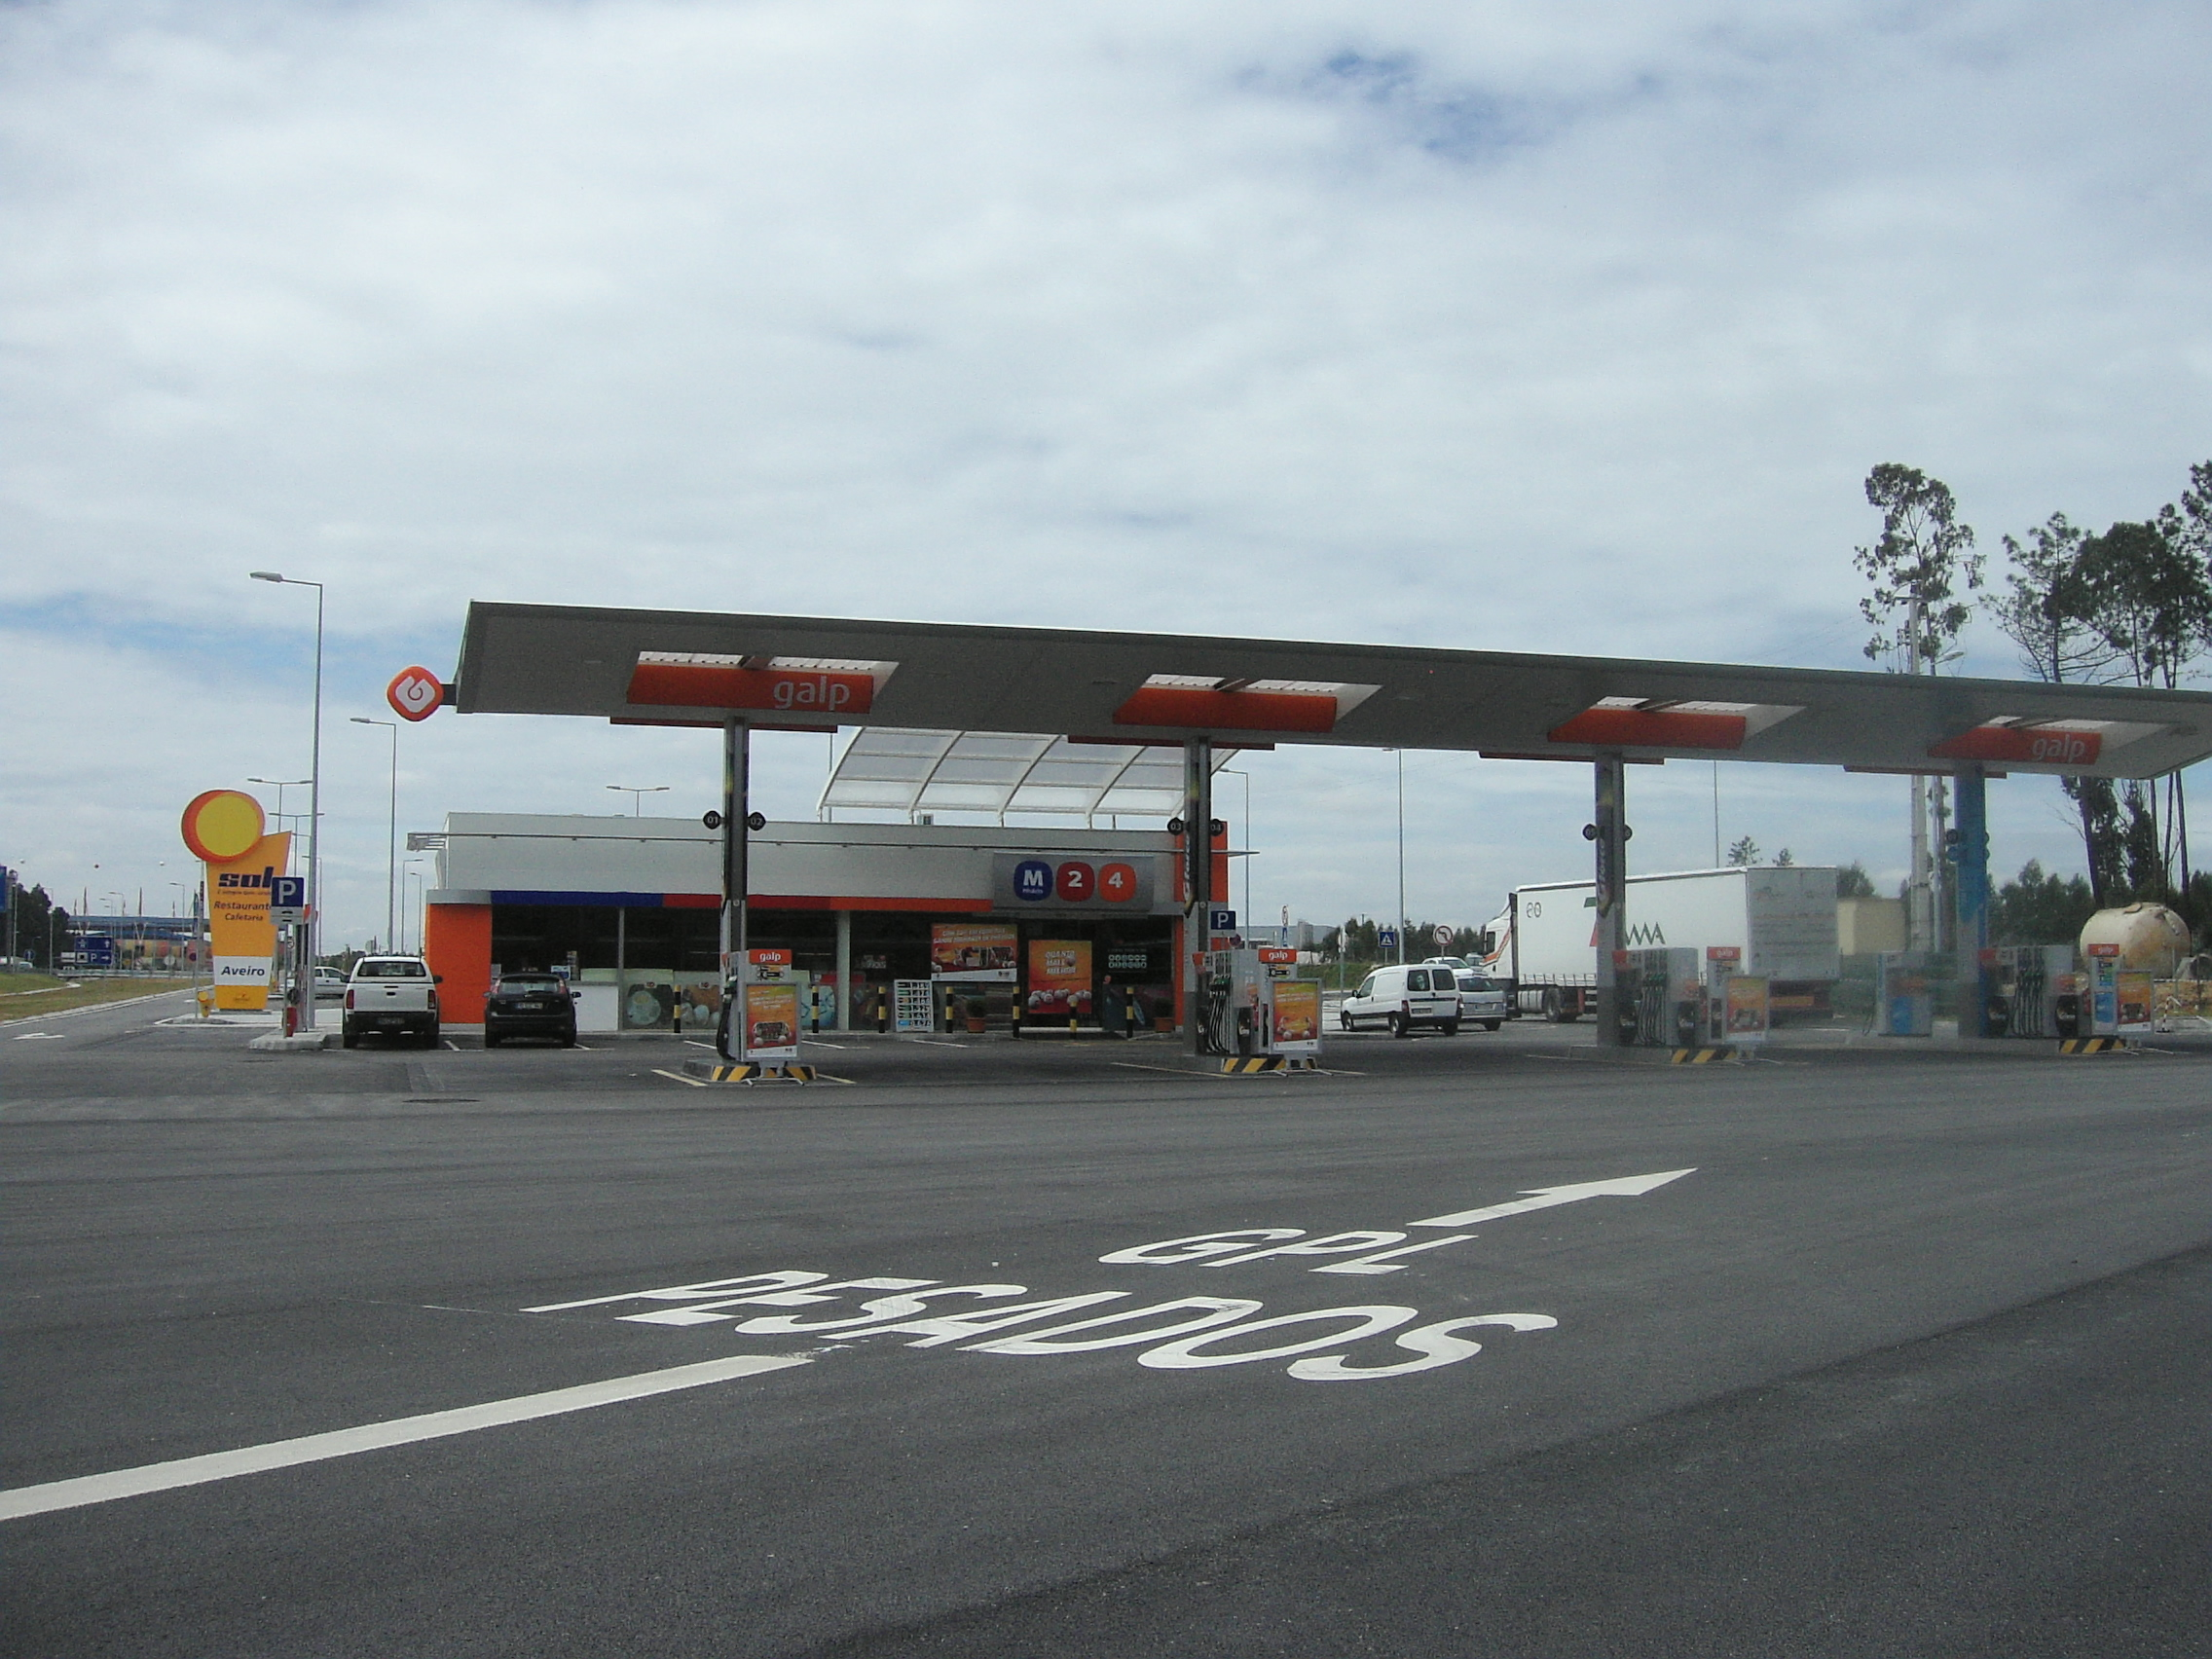 Petrol stations in Portugal: Galp